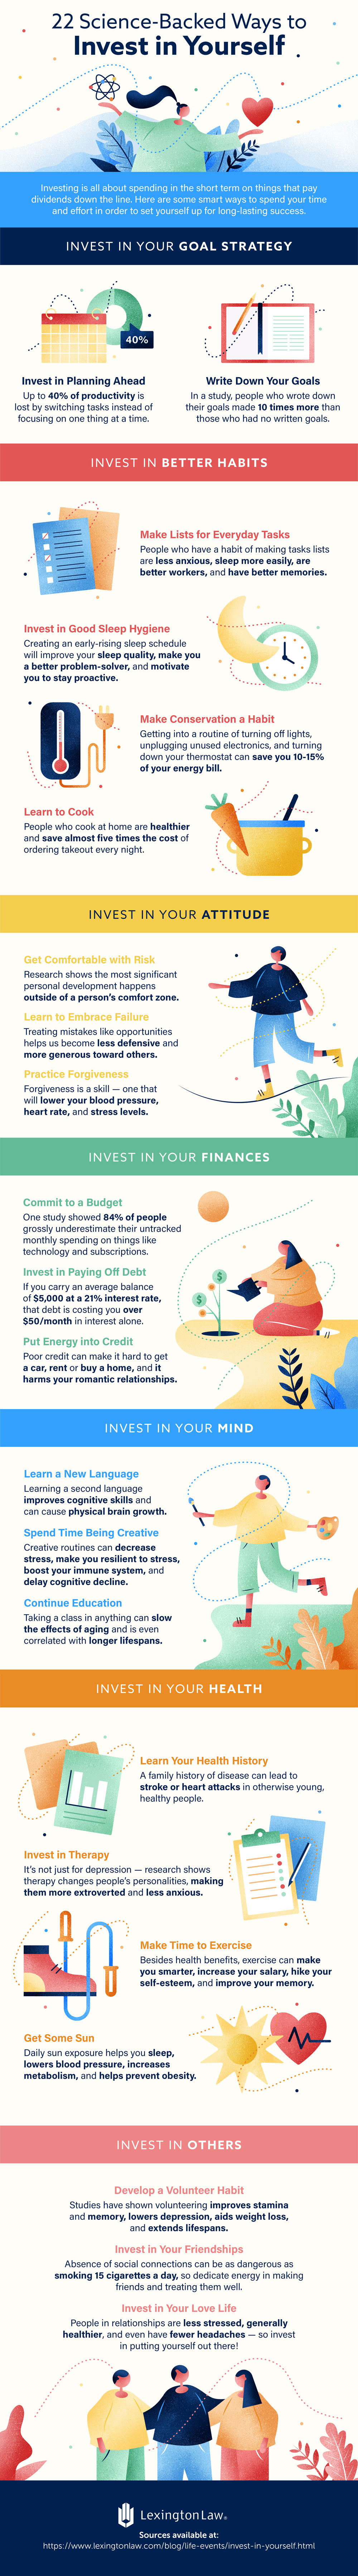 22 Science-Backed Ways to Invest in Yourself - Infographic